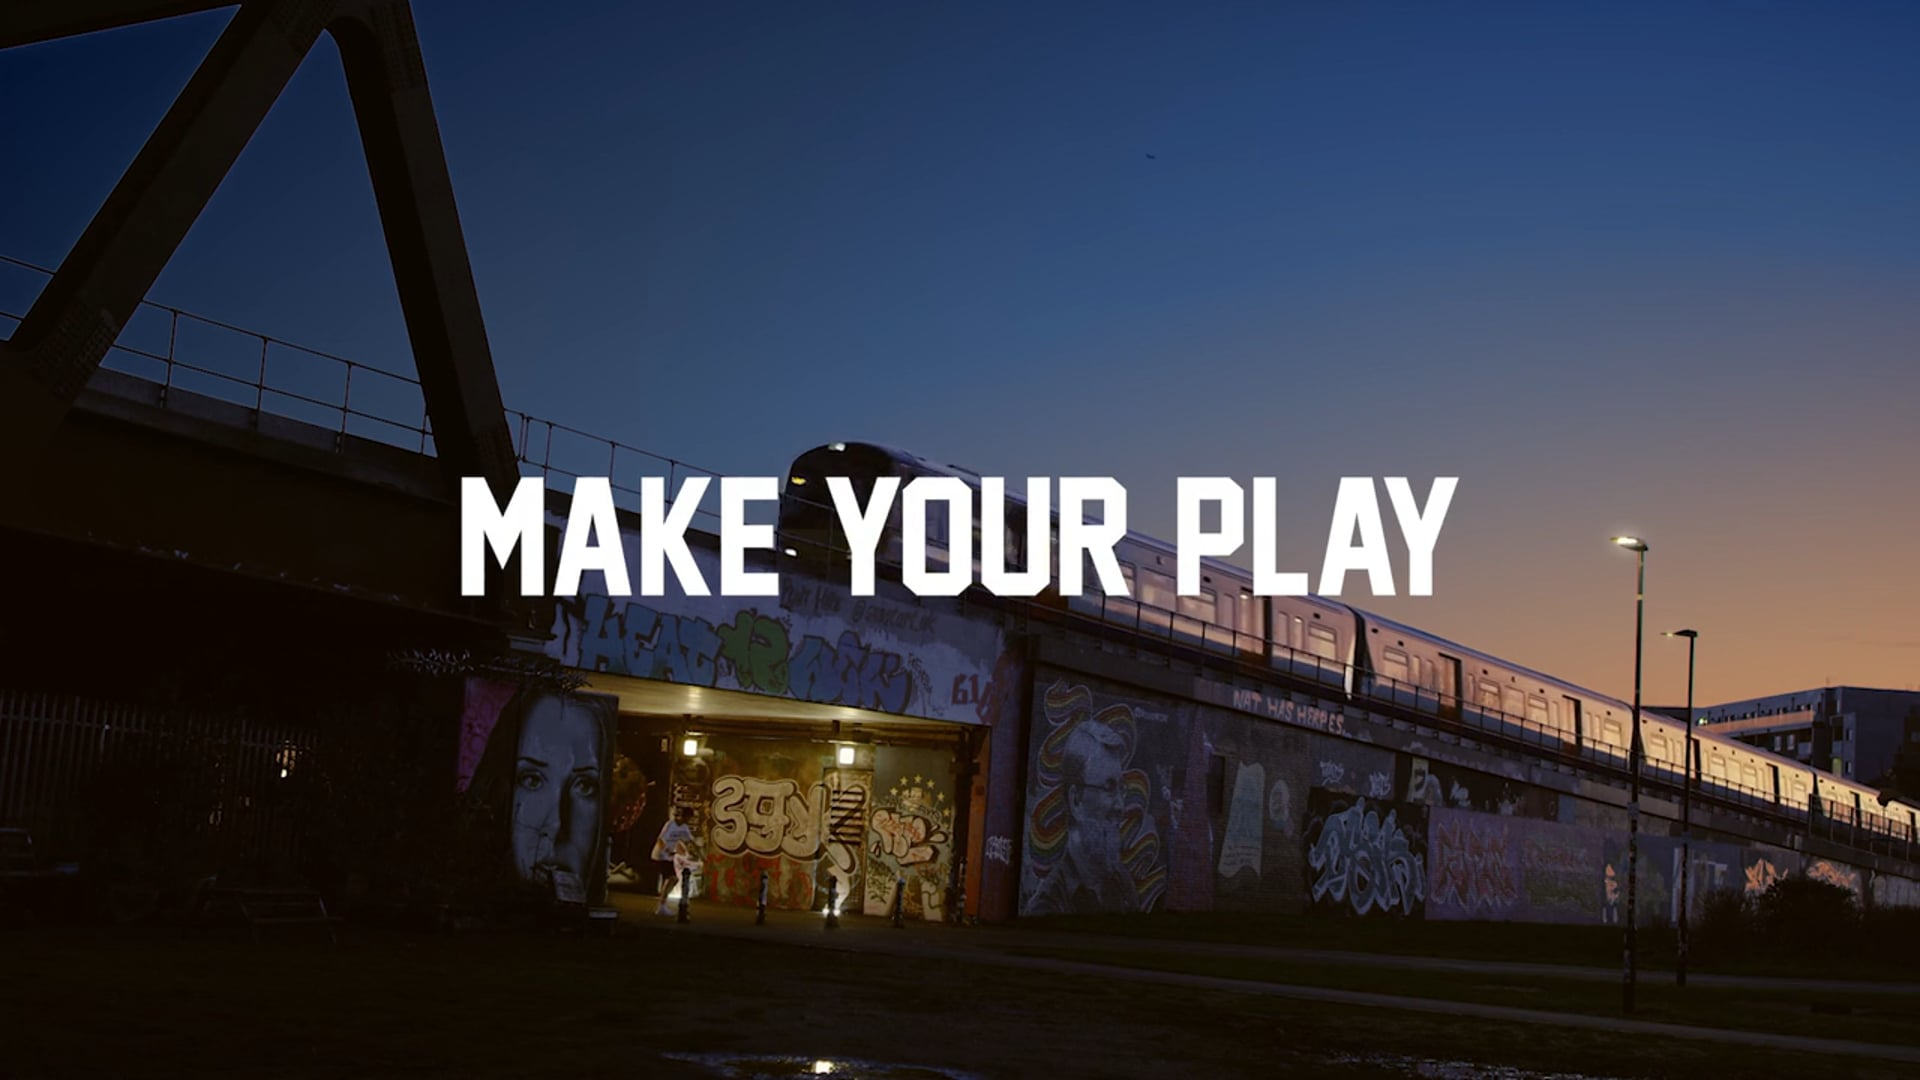 HEAD_MAKE YOUR PLAY